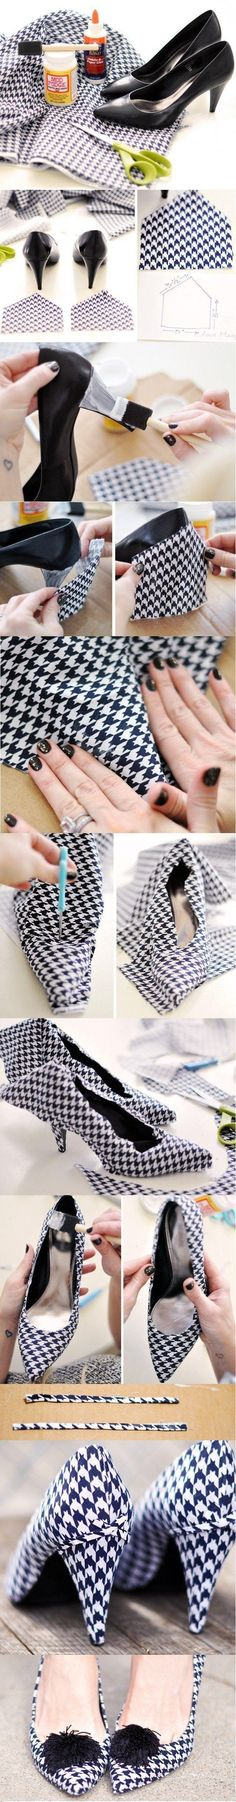 Houndstooth shoe makeover with pomp pomp, very cute.  Not sure I would have the patients to do it but they are adorable.